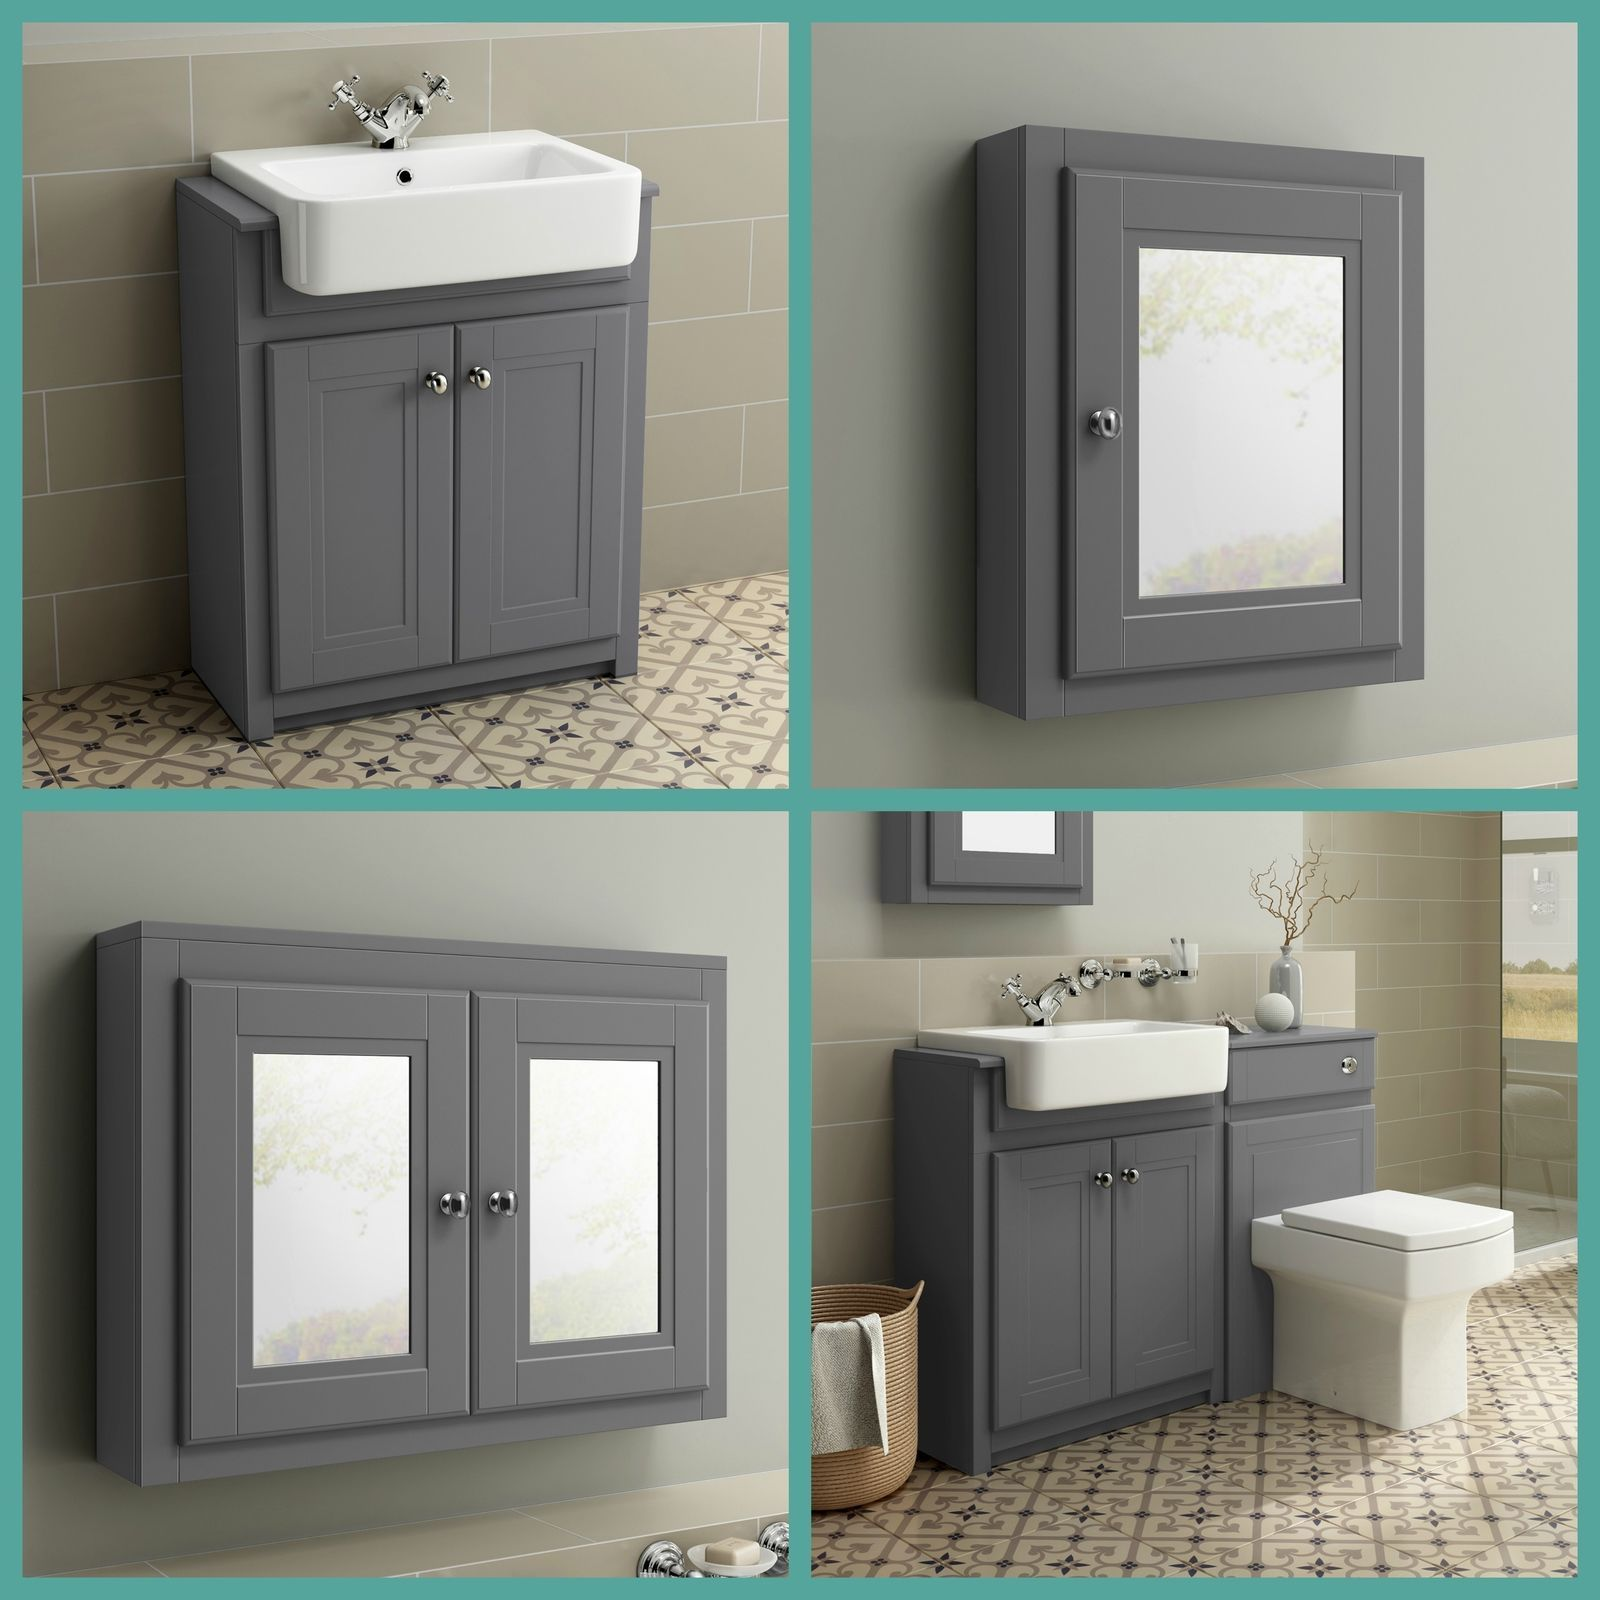 Traditional Grey Bathroom Vanity Unit Basin Furniture Storage Cabinet Mirror Ebay Badezimmer Grau Badezimmer Mobel Badezimmer